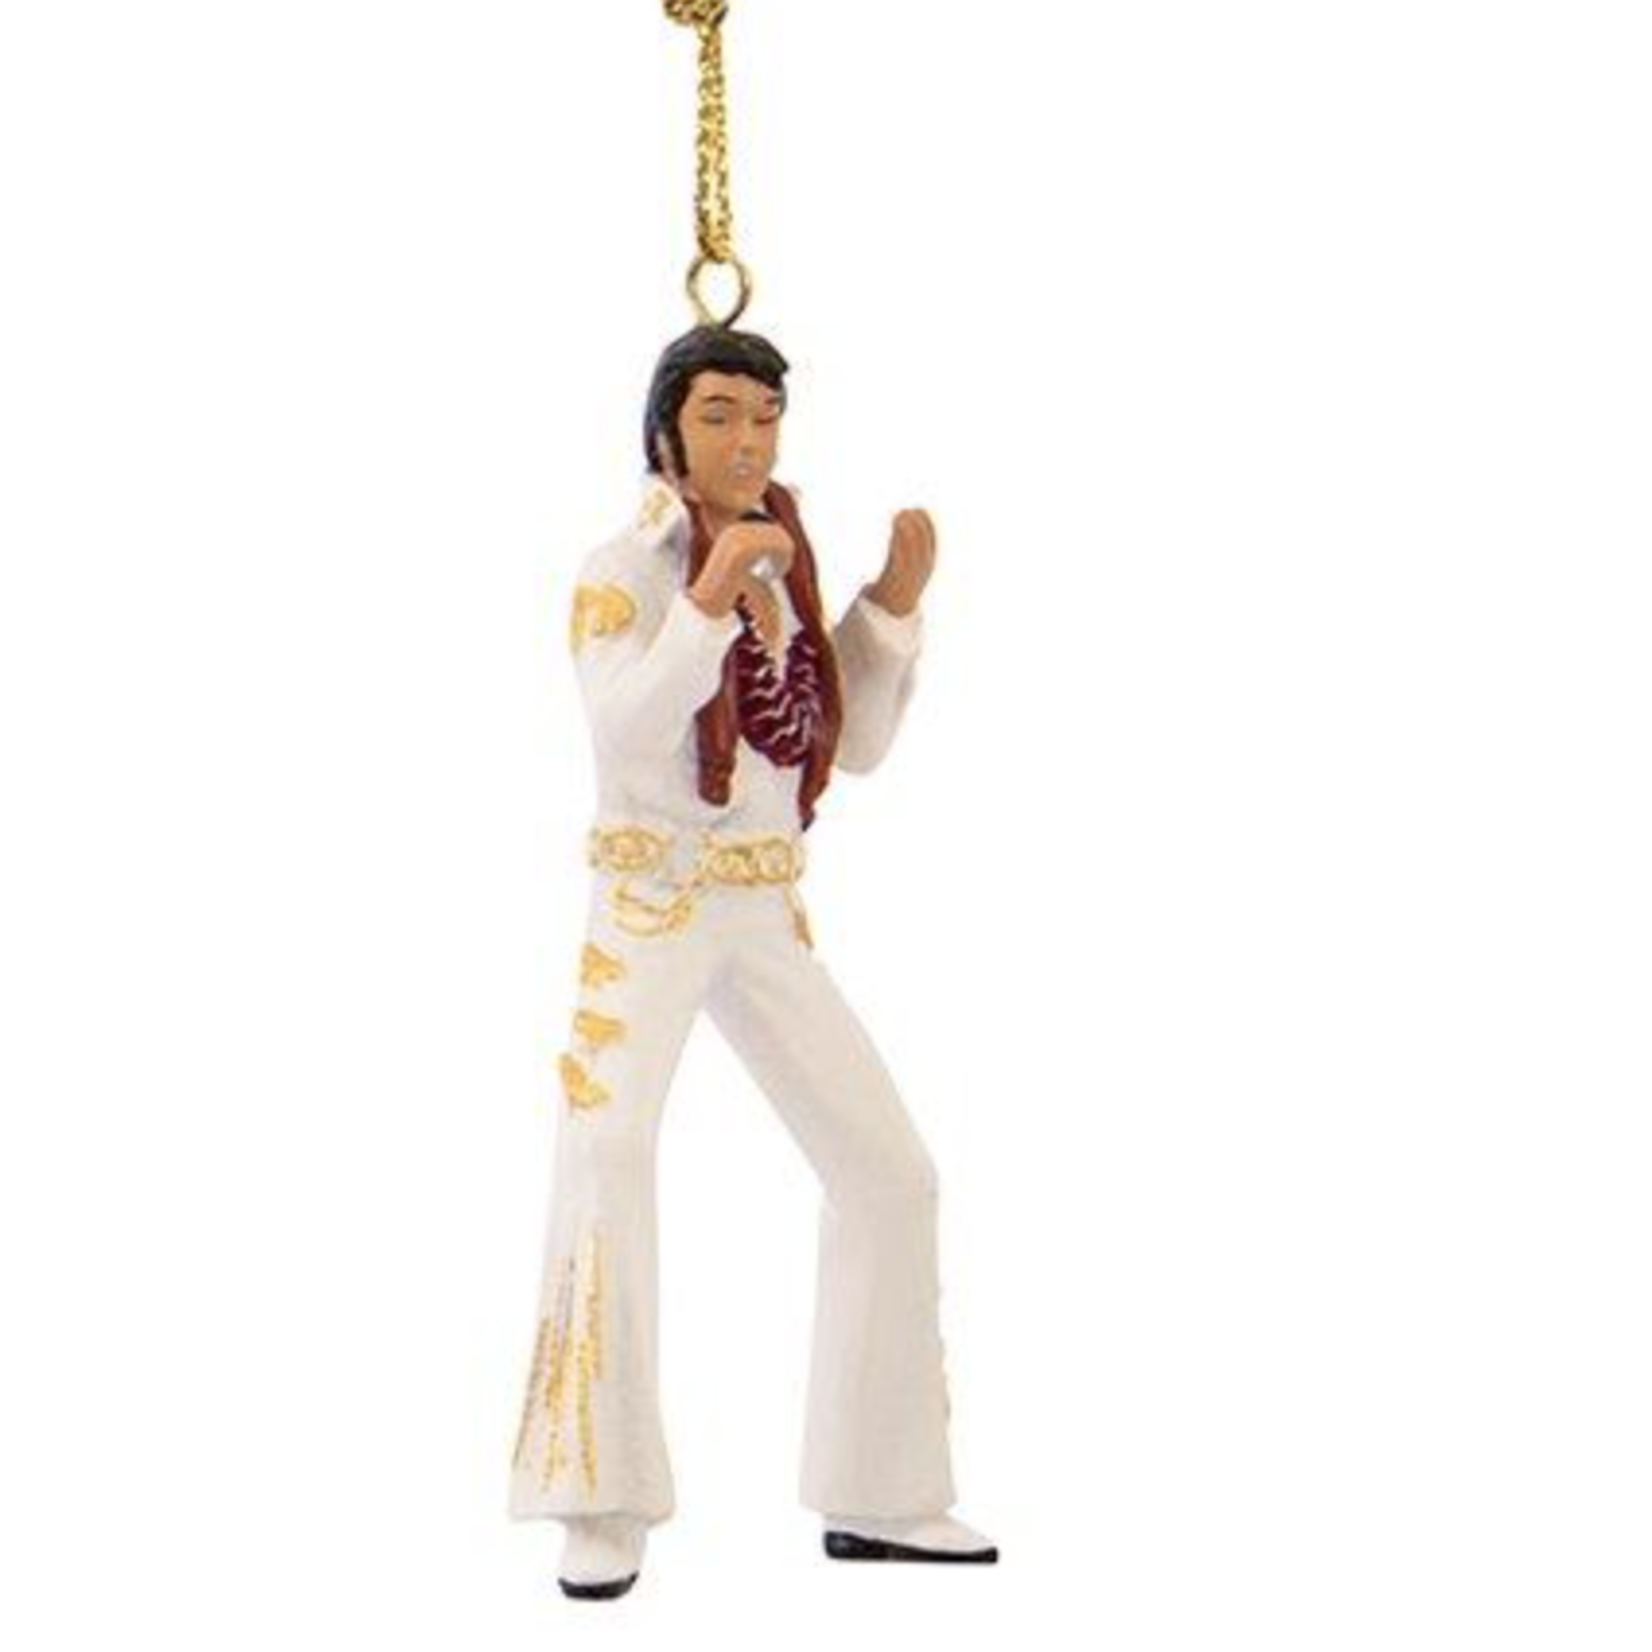 Ornament - Elvis - 2.5 inch White Outfit